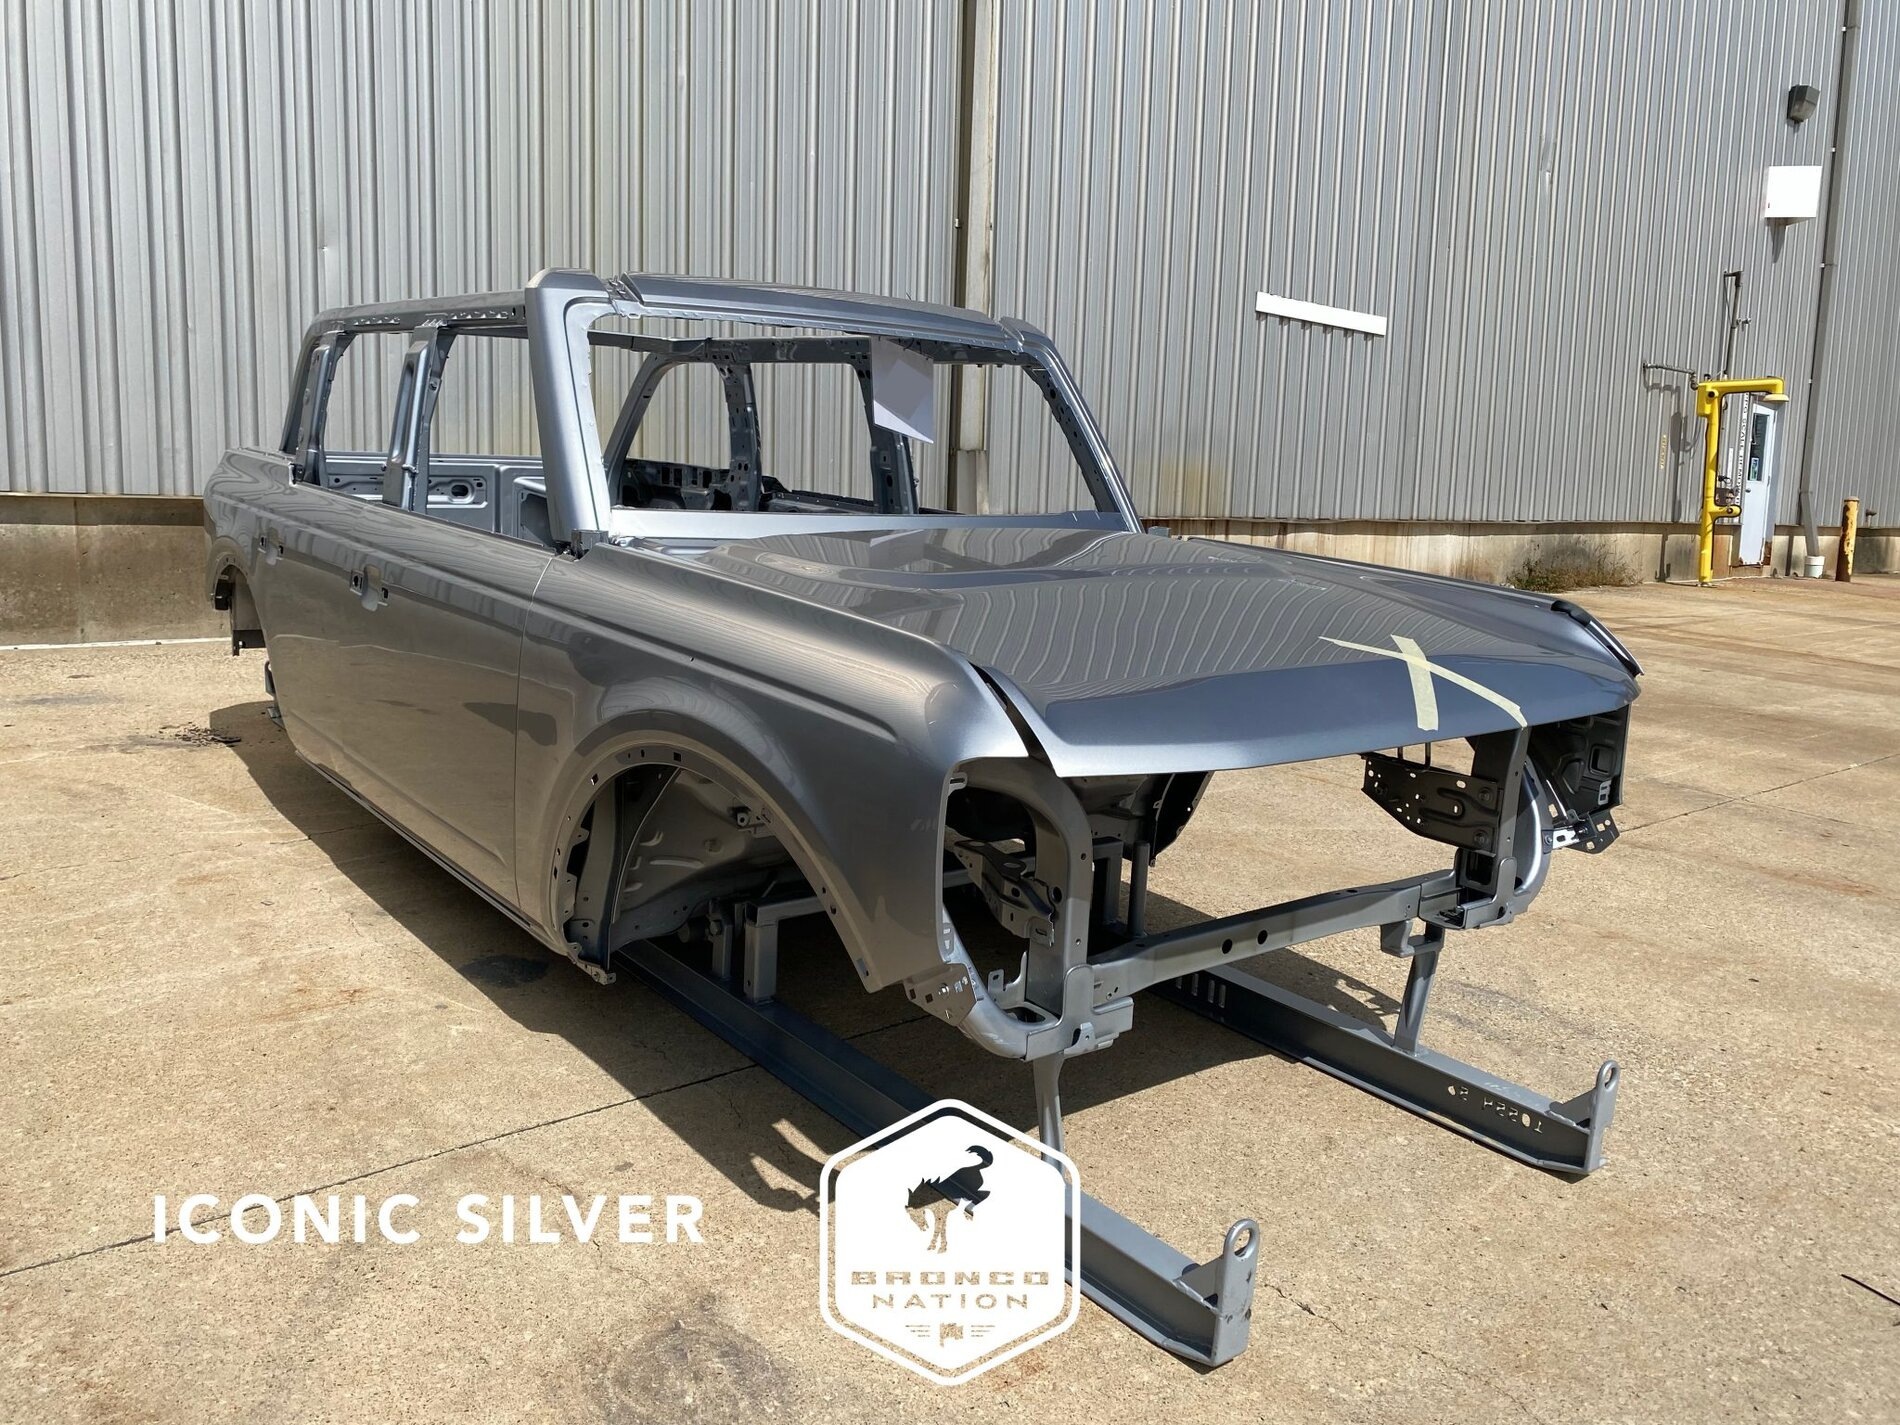 2021 Bronco Iconic Silver painted body sample.jpg